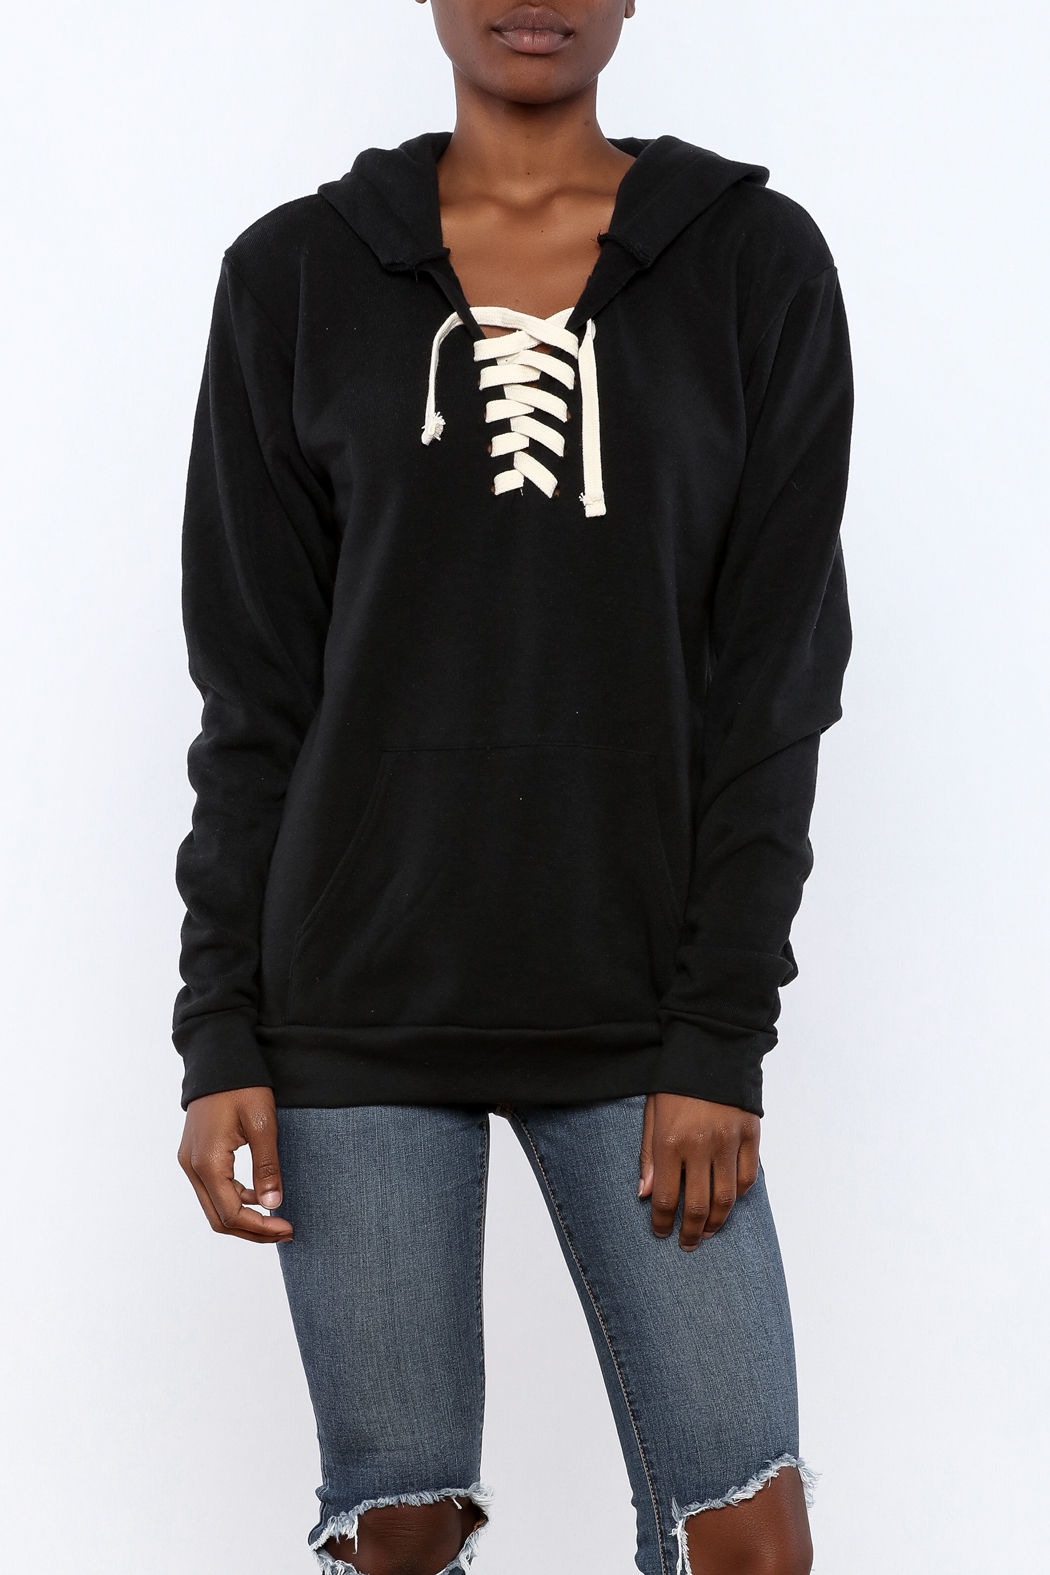 Vintage Brand Lace Up Pullover Hoodie from Long Island by Max ...